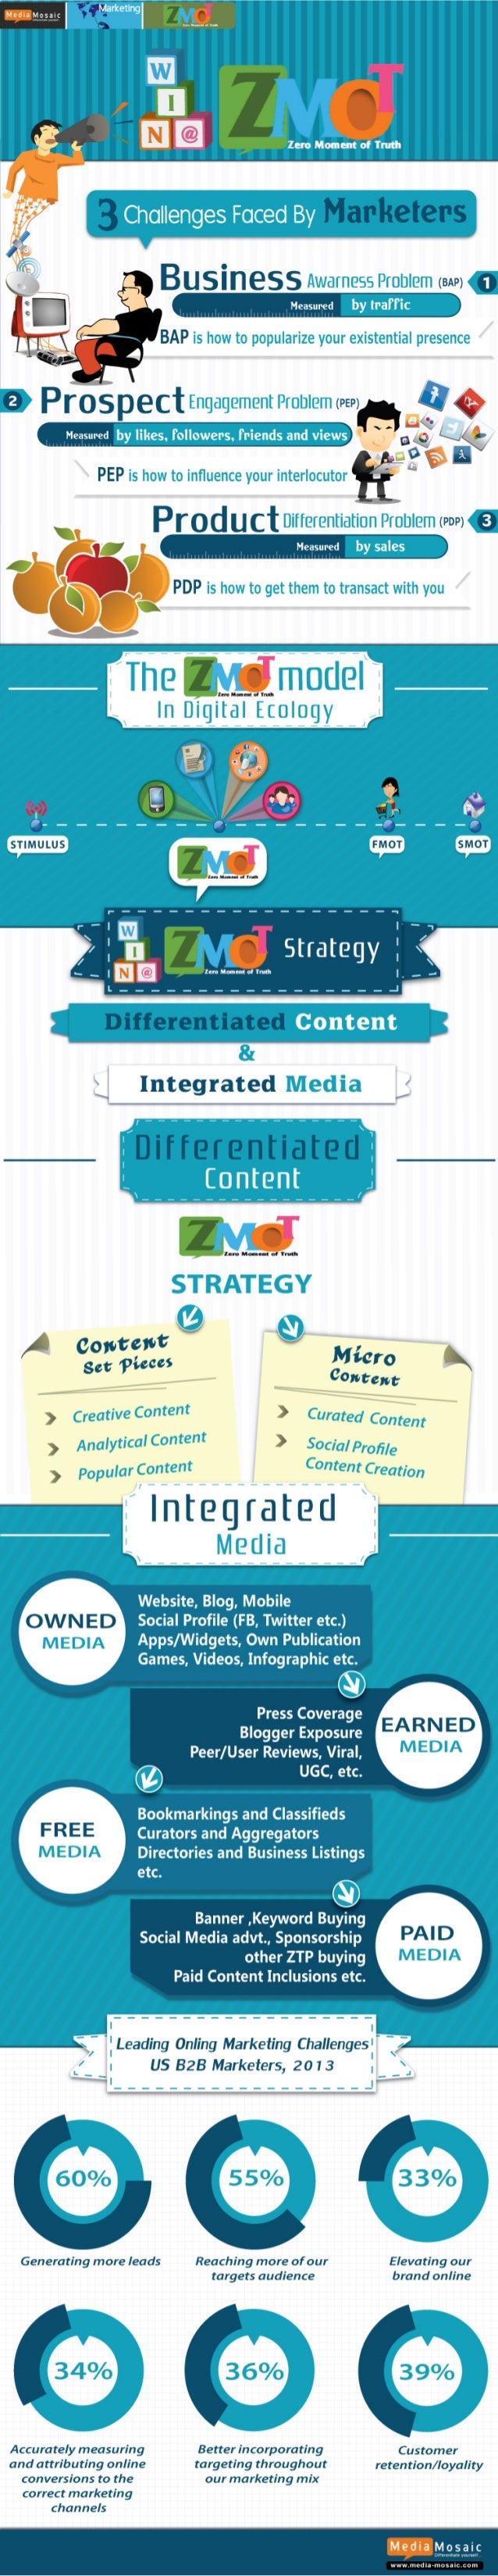 How to win the zero moment of truth marketing strategies (Zmot infographic)